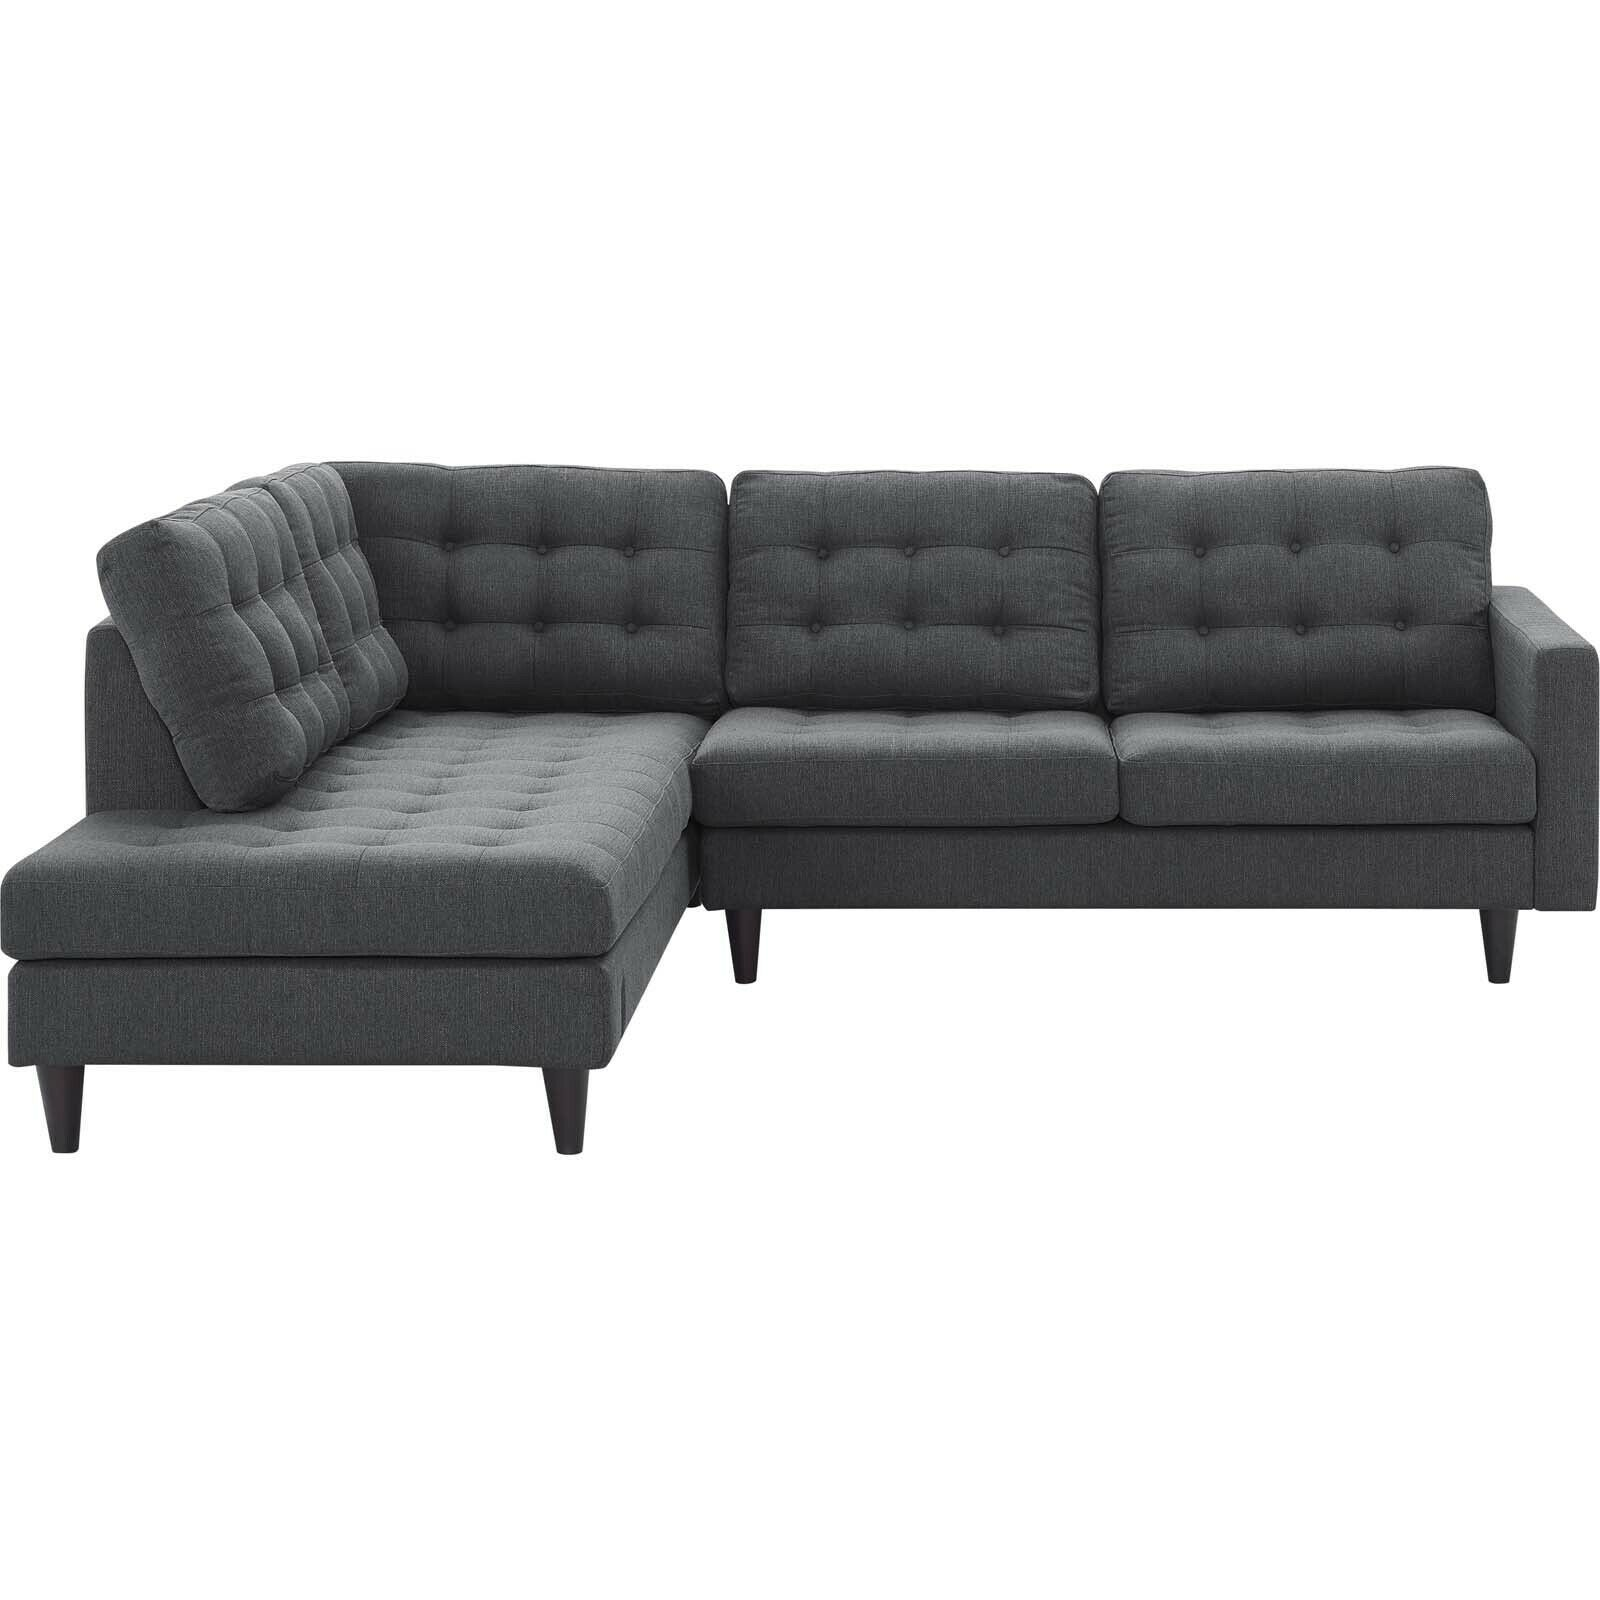 Pin On Grey Sofas